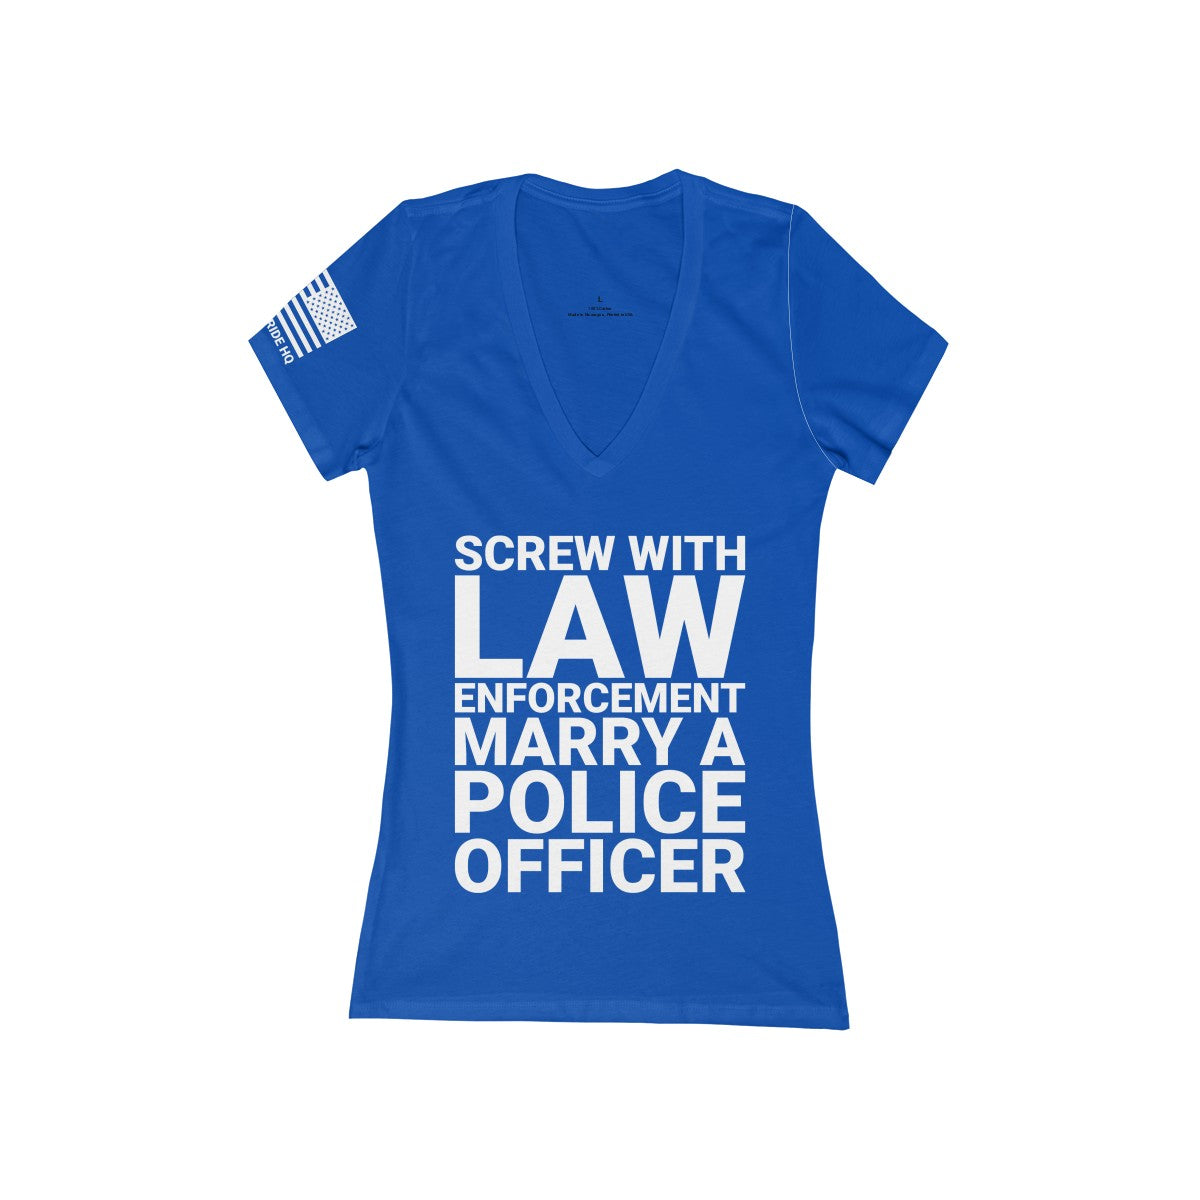 Screw with Law Enforcement - Marry a Police Officer Women's V-Neck Tee